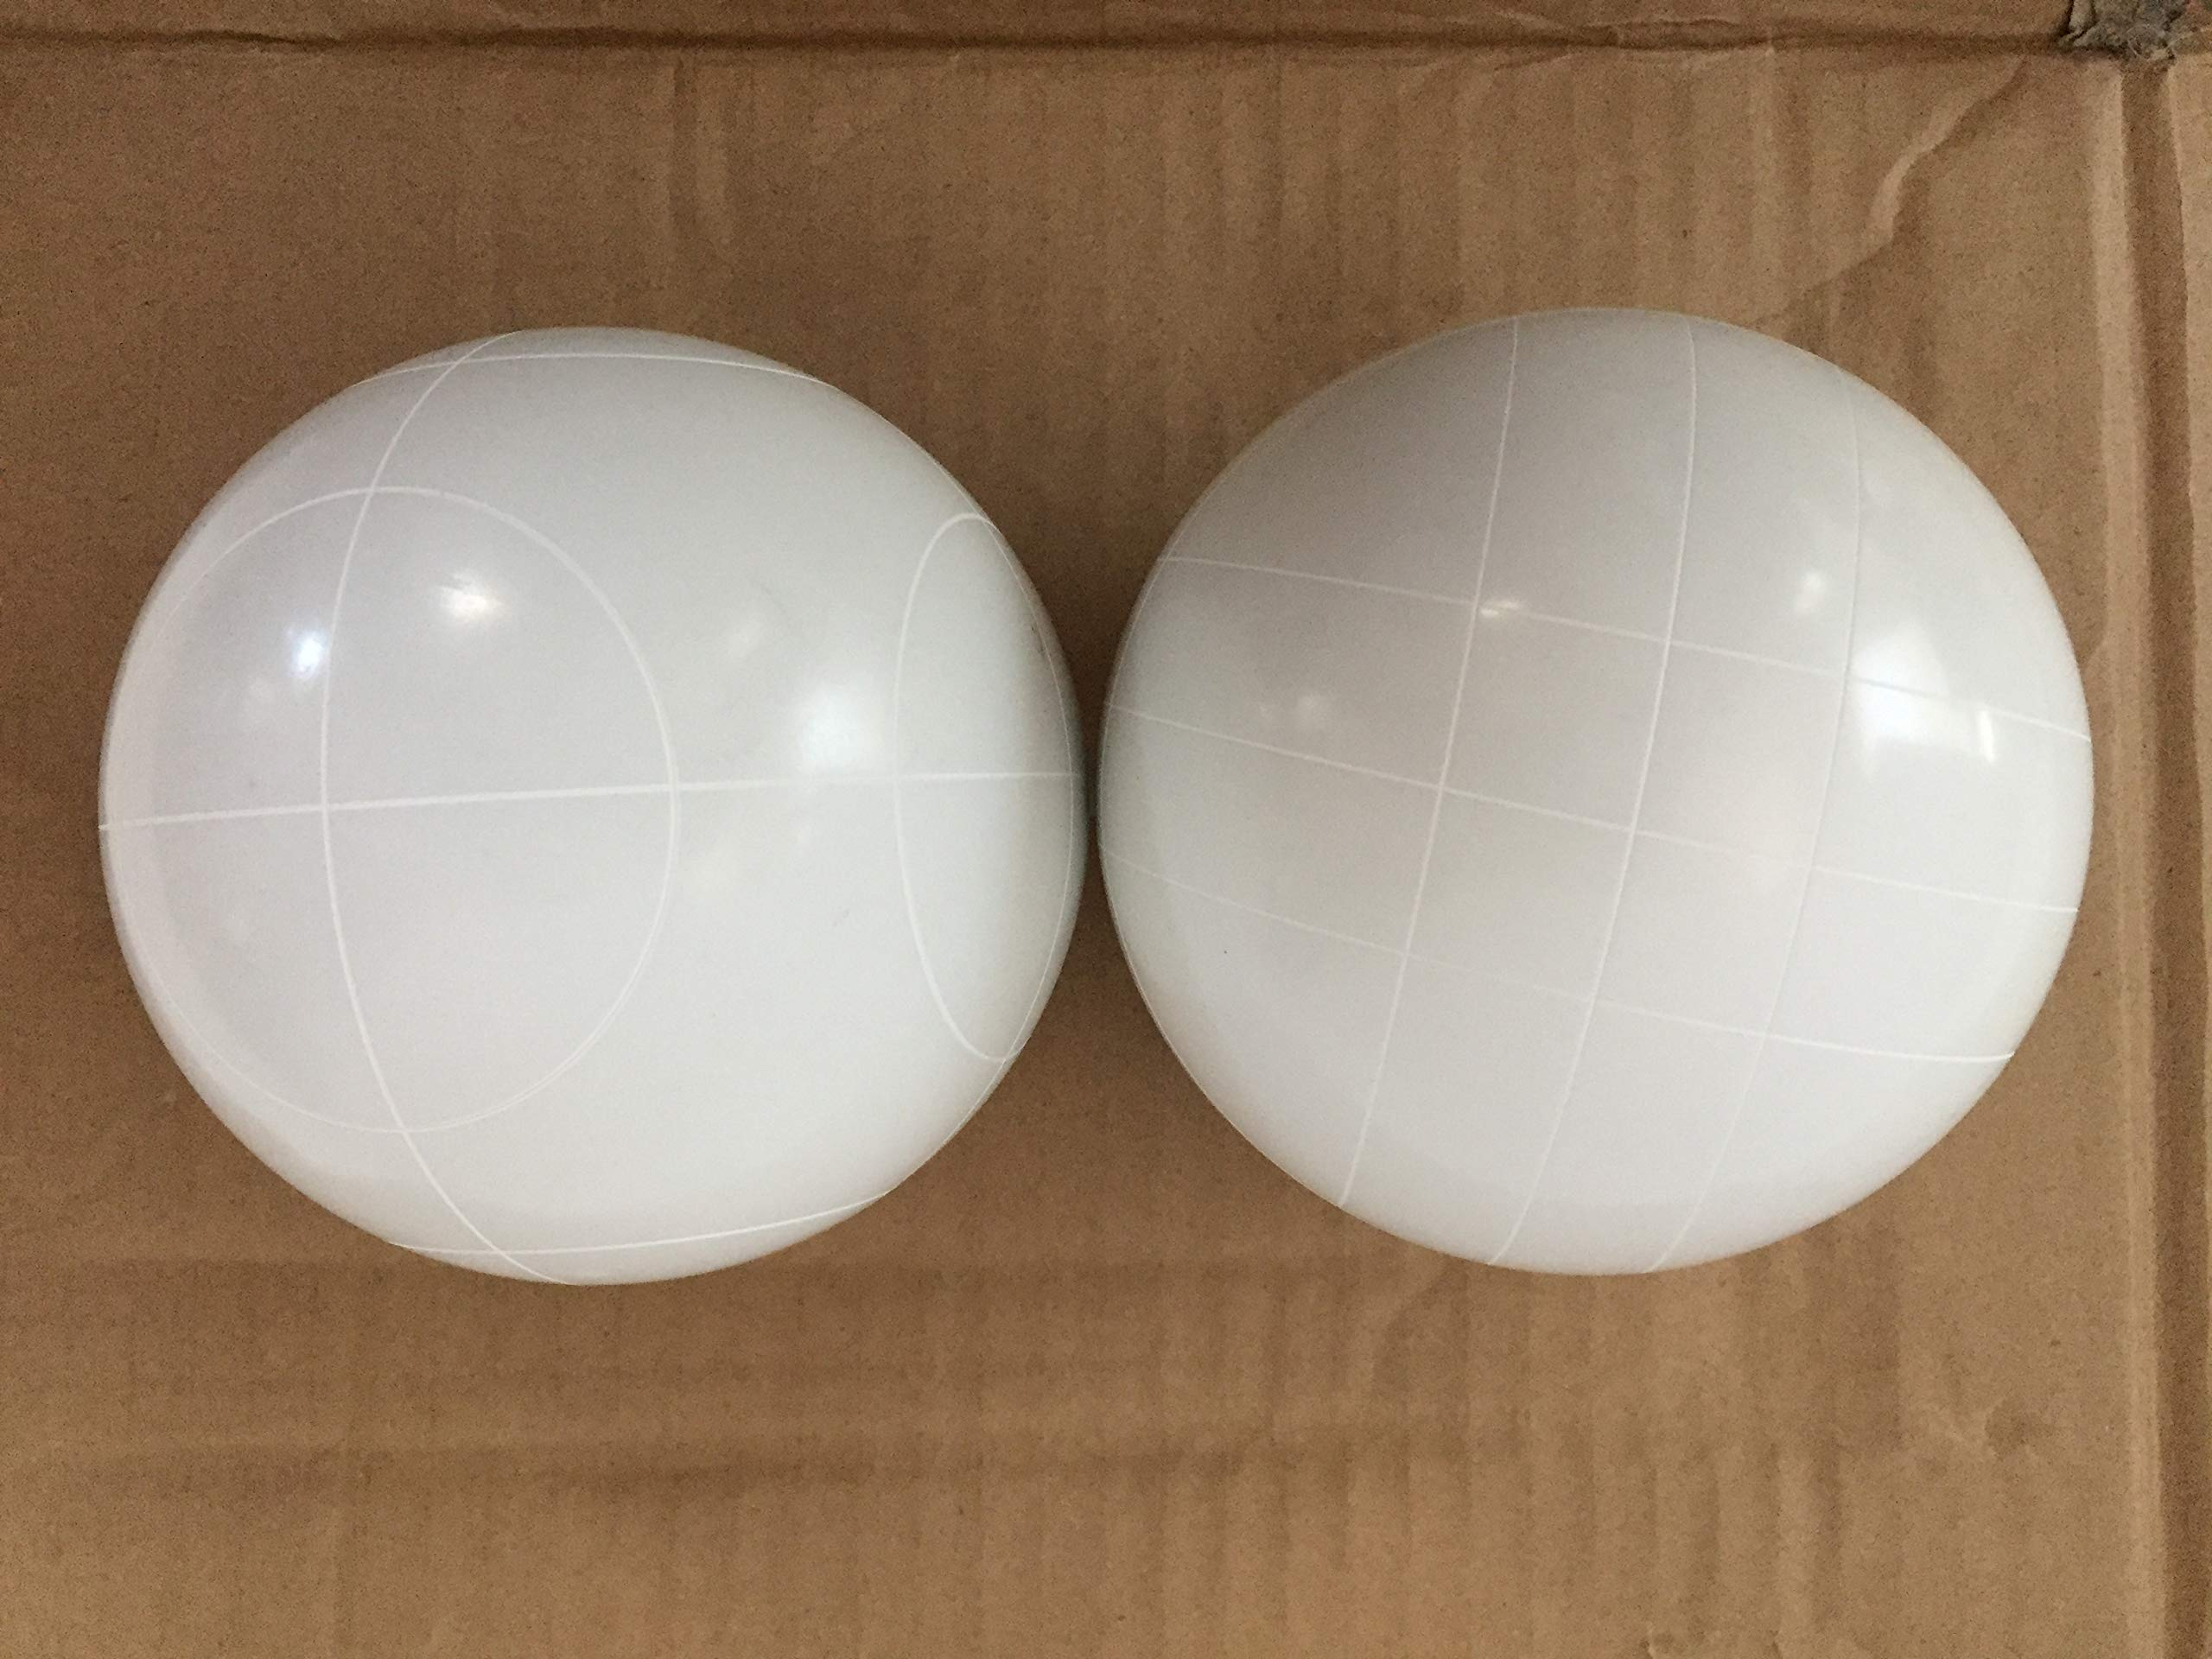 Pack of 2 - Replacement Bocce Balls - 107mm - White with 2 Different Scoring Patterns